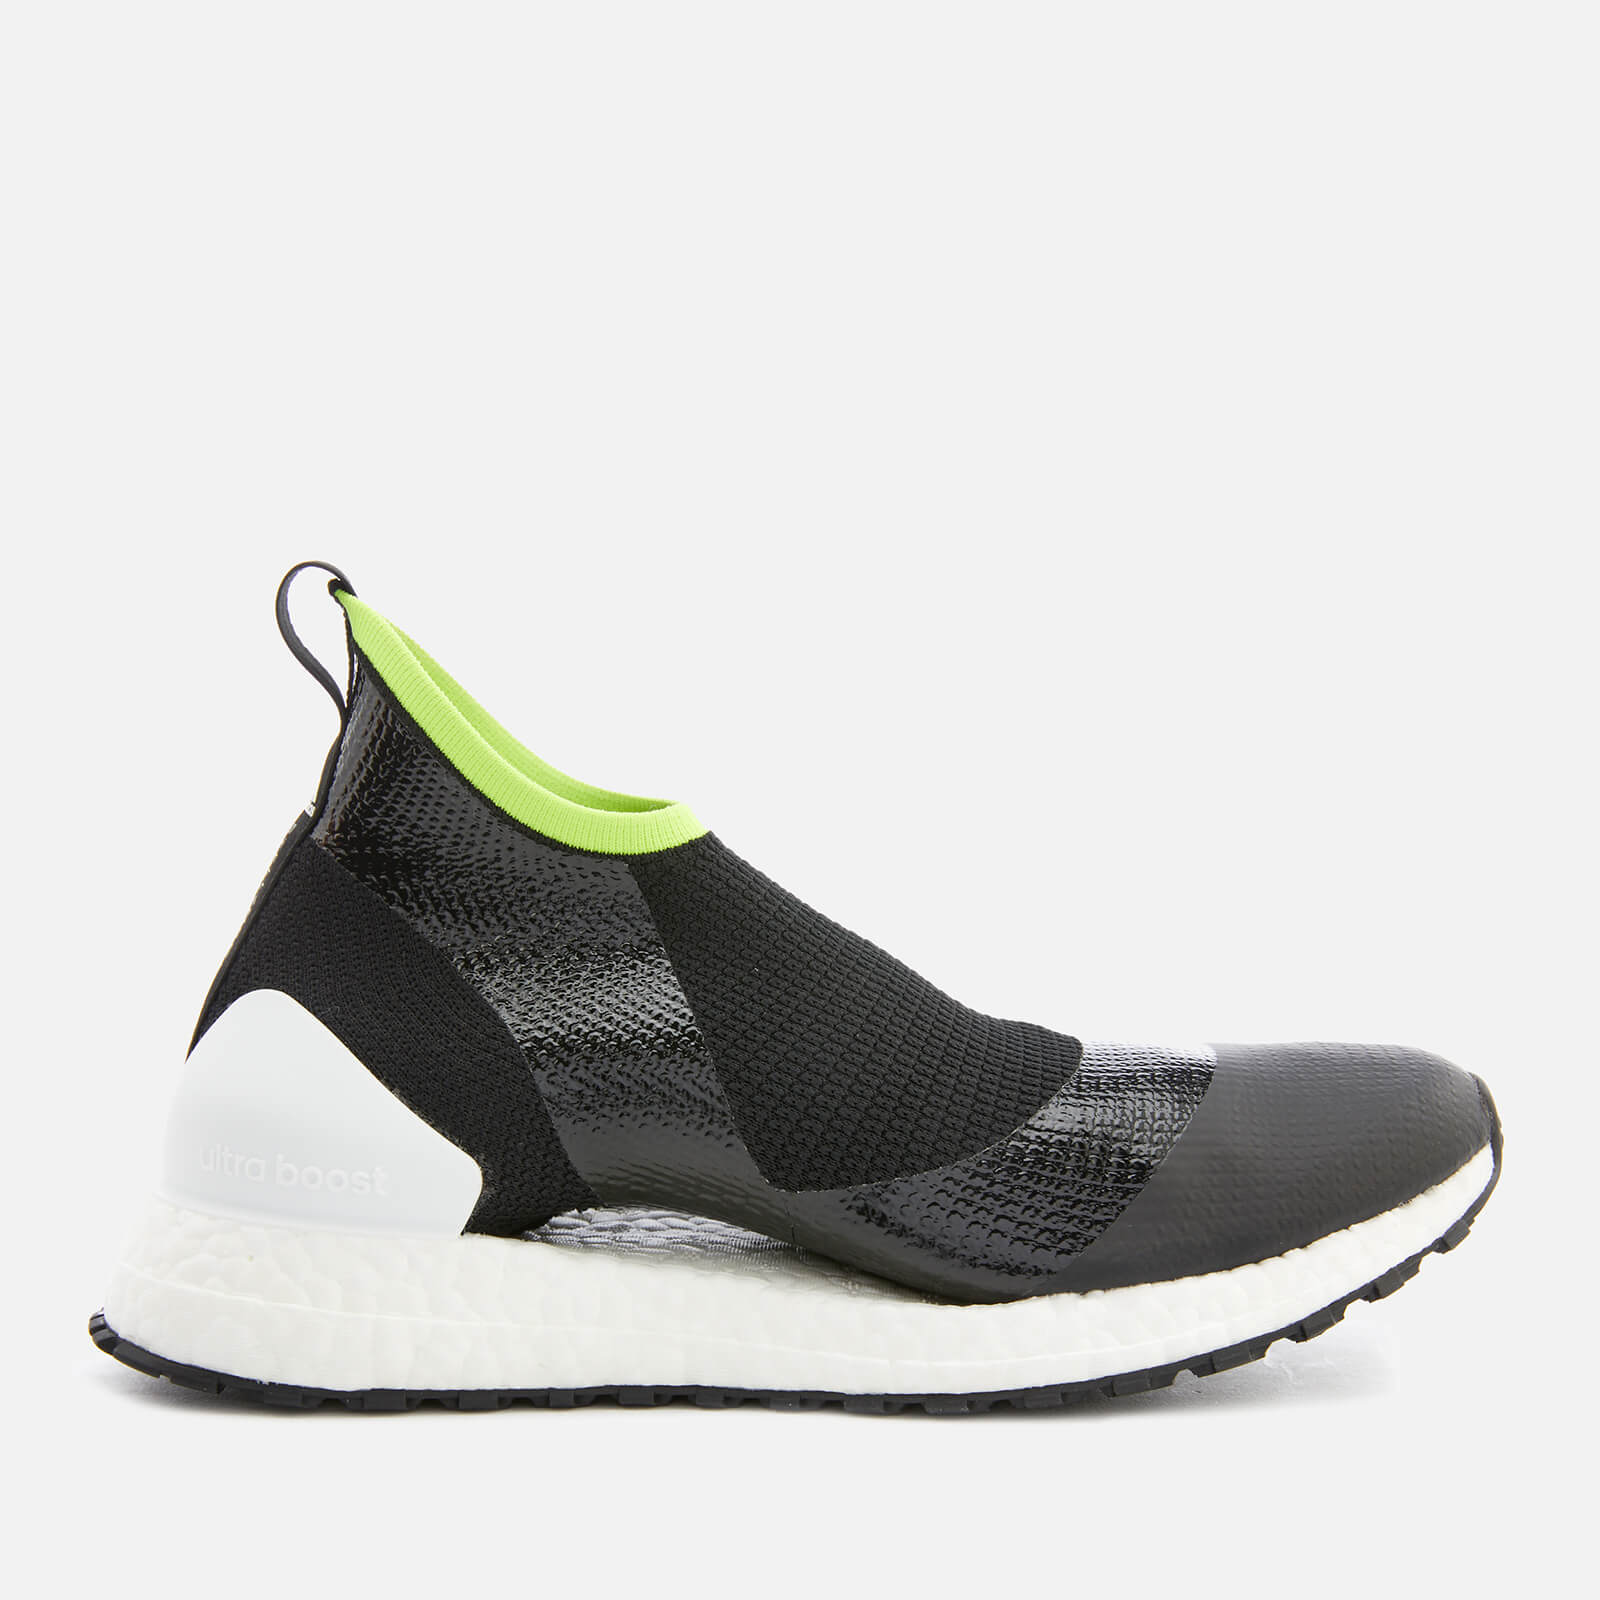 afbcaf1abe795 adidas by Stella McCartney Women s Ultraboost X All TerrainTrainers - Core  Black White Solar Slime - Free UK Delivery over £50